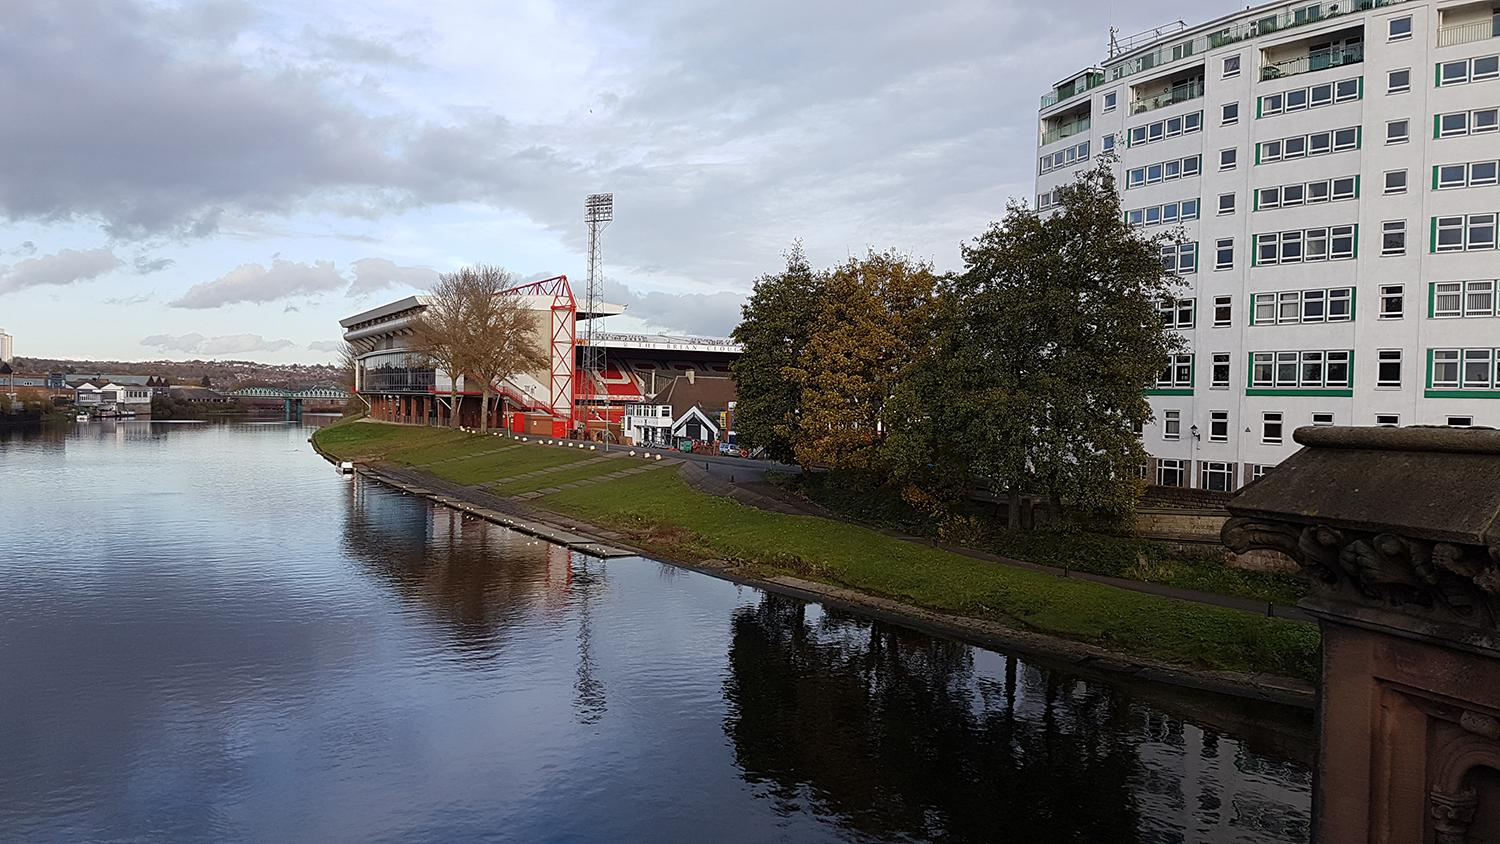 Nottingham Forest – It's very hard to dislike a club when it looks this good